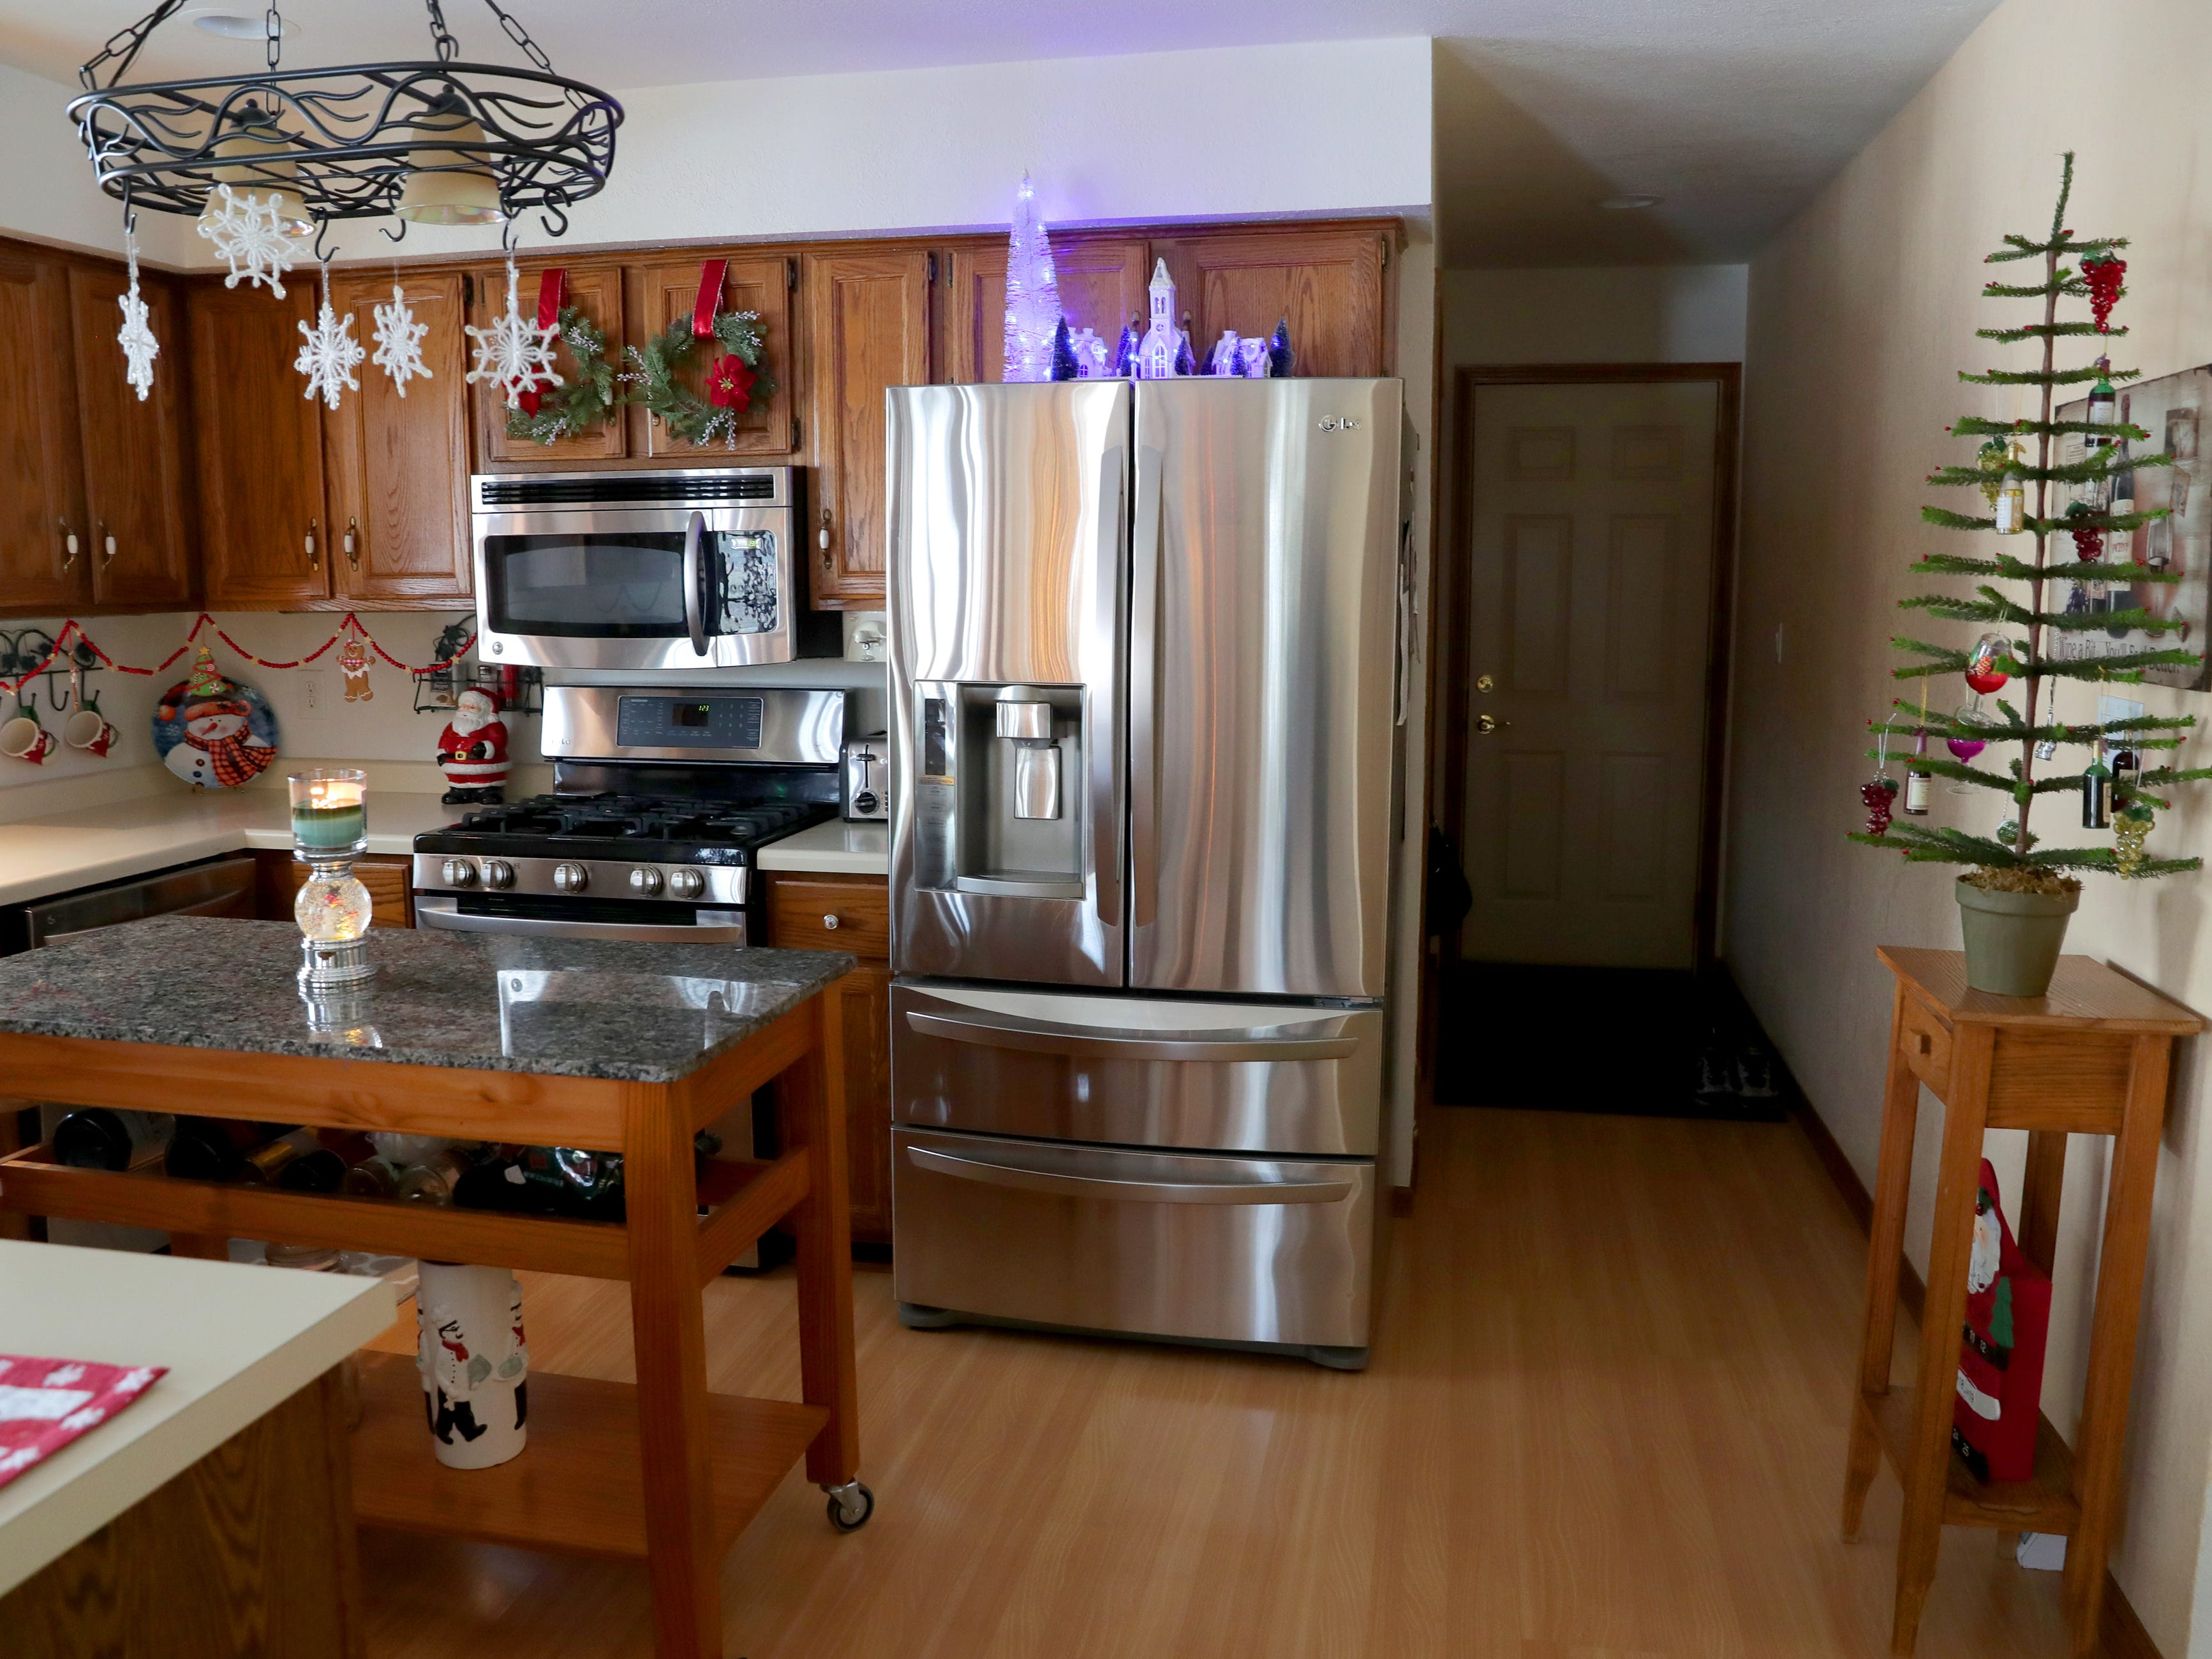 The kitchen showcases various holiday decorations, including snowflakes hanging from the chandelier.